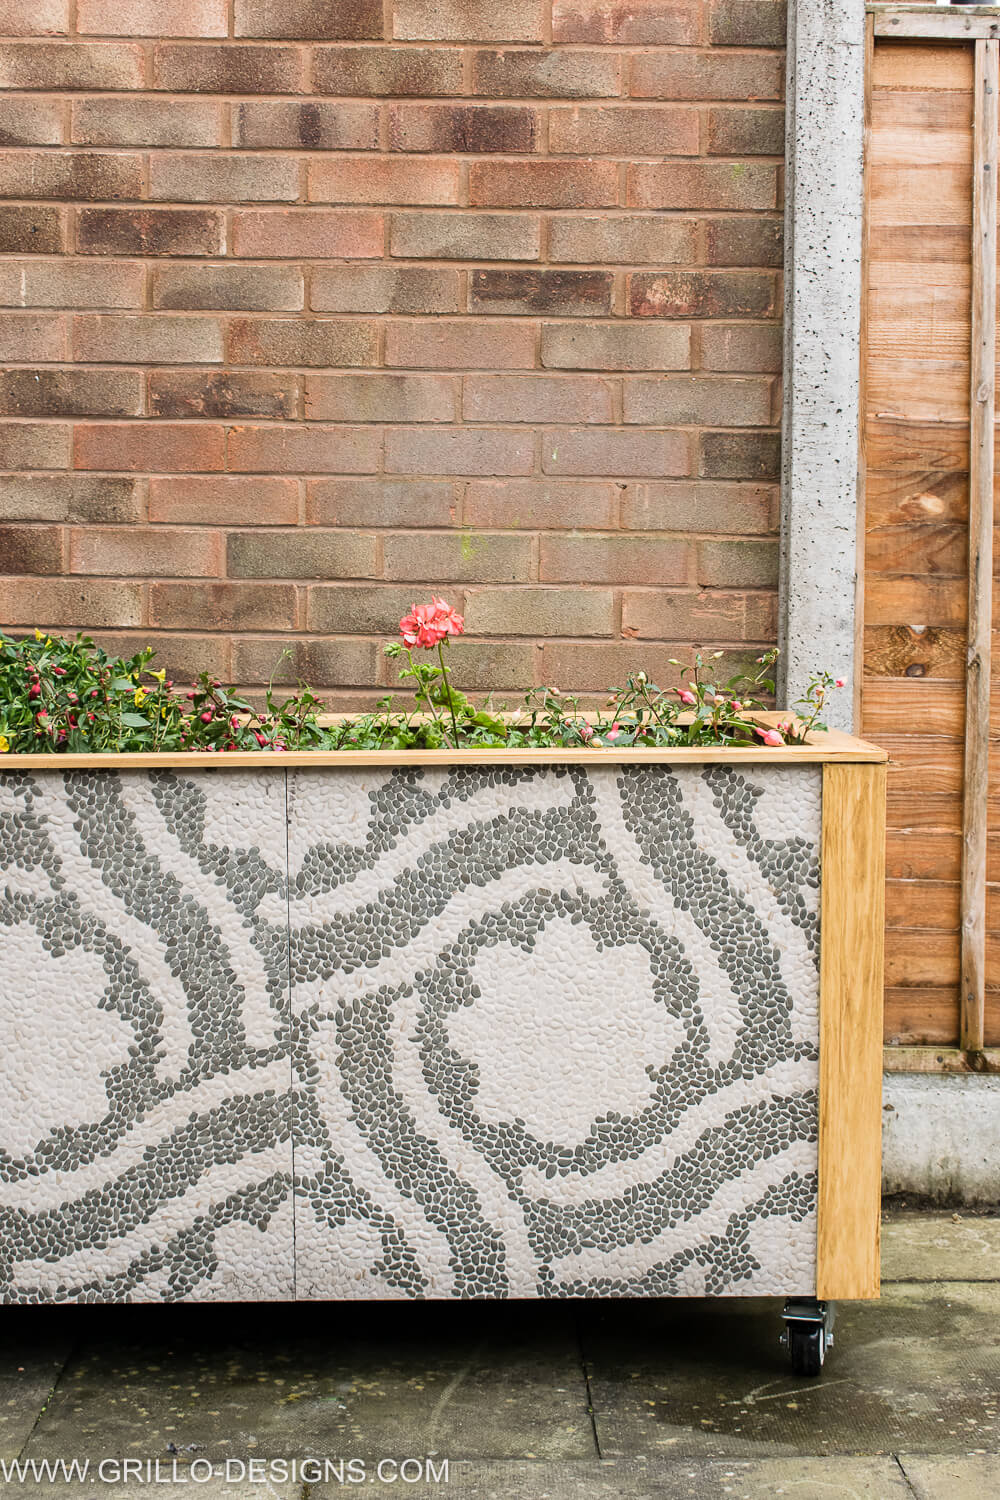 Stylish diy trough planter for outdoors / grillo designs